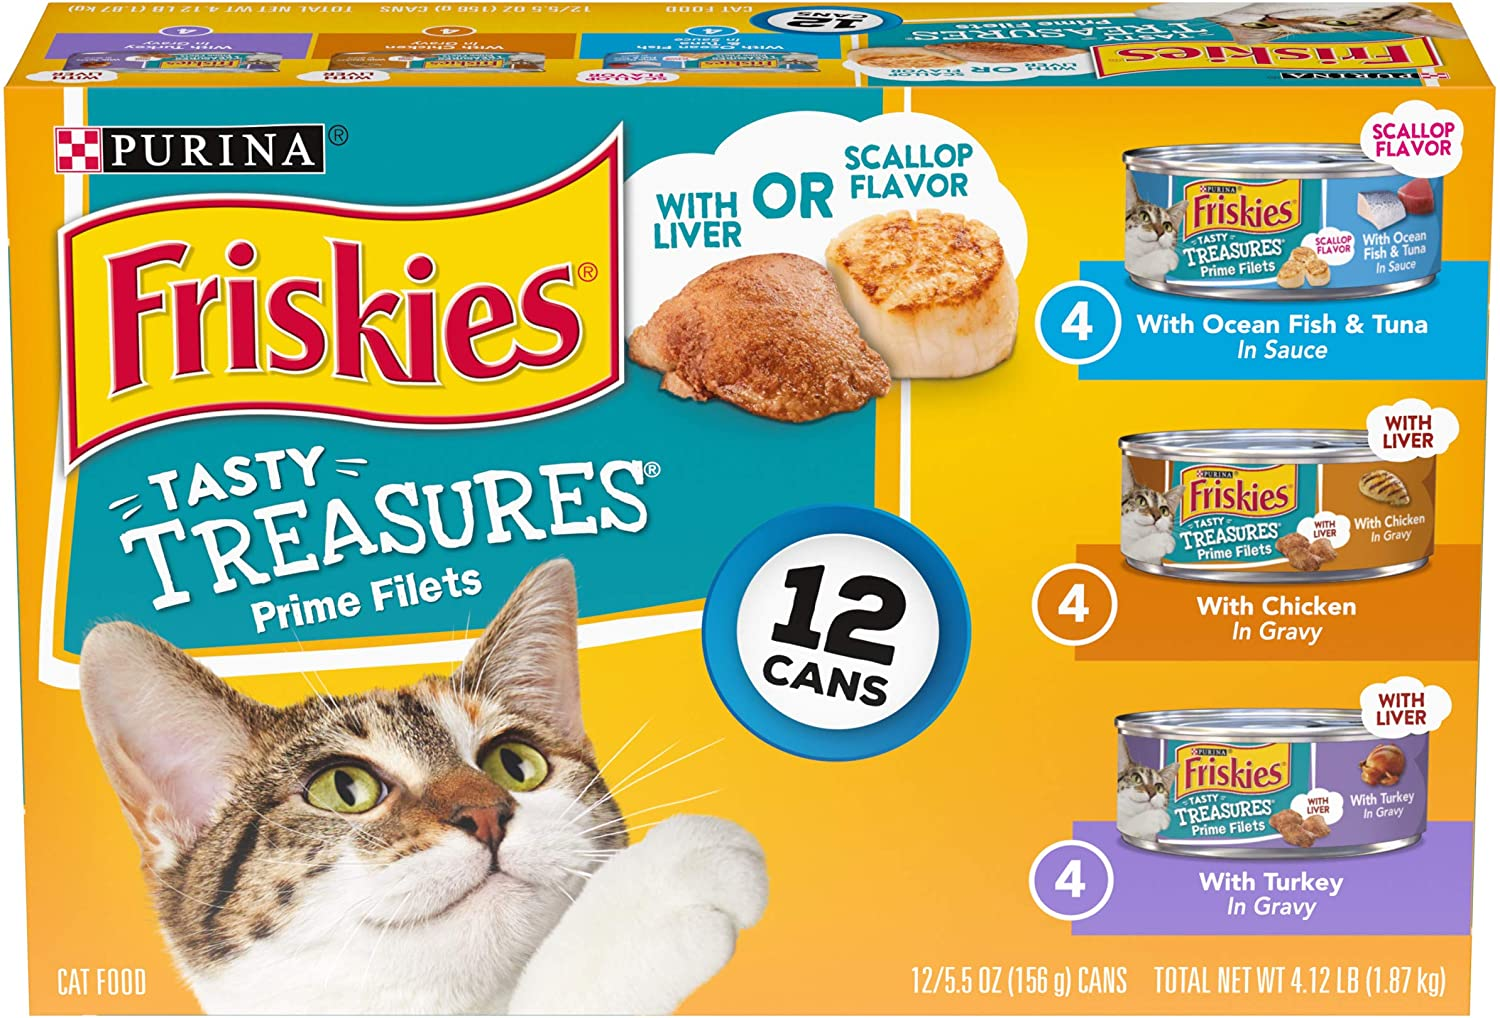 Purina Friskies Tasty Treasures Adult Wet Cat Food Variety Pack